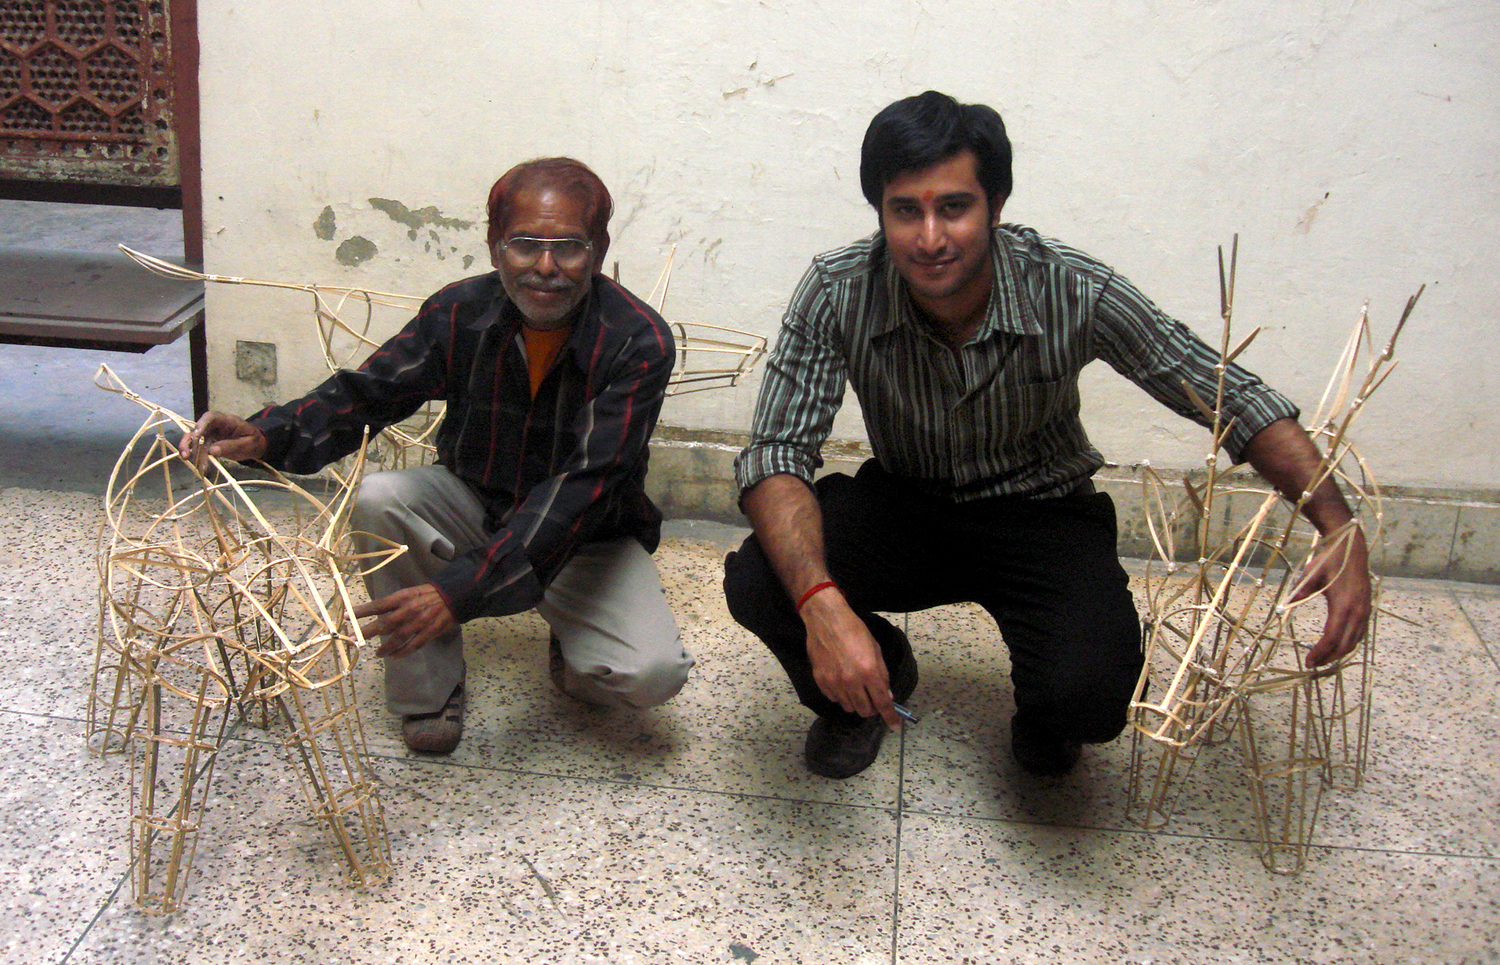 Abhimanyu with the master craftsman who helped build the lamps out of bamboo, cloth and handmade paper.